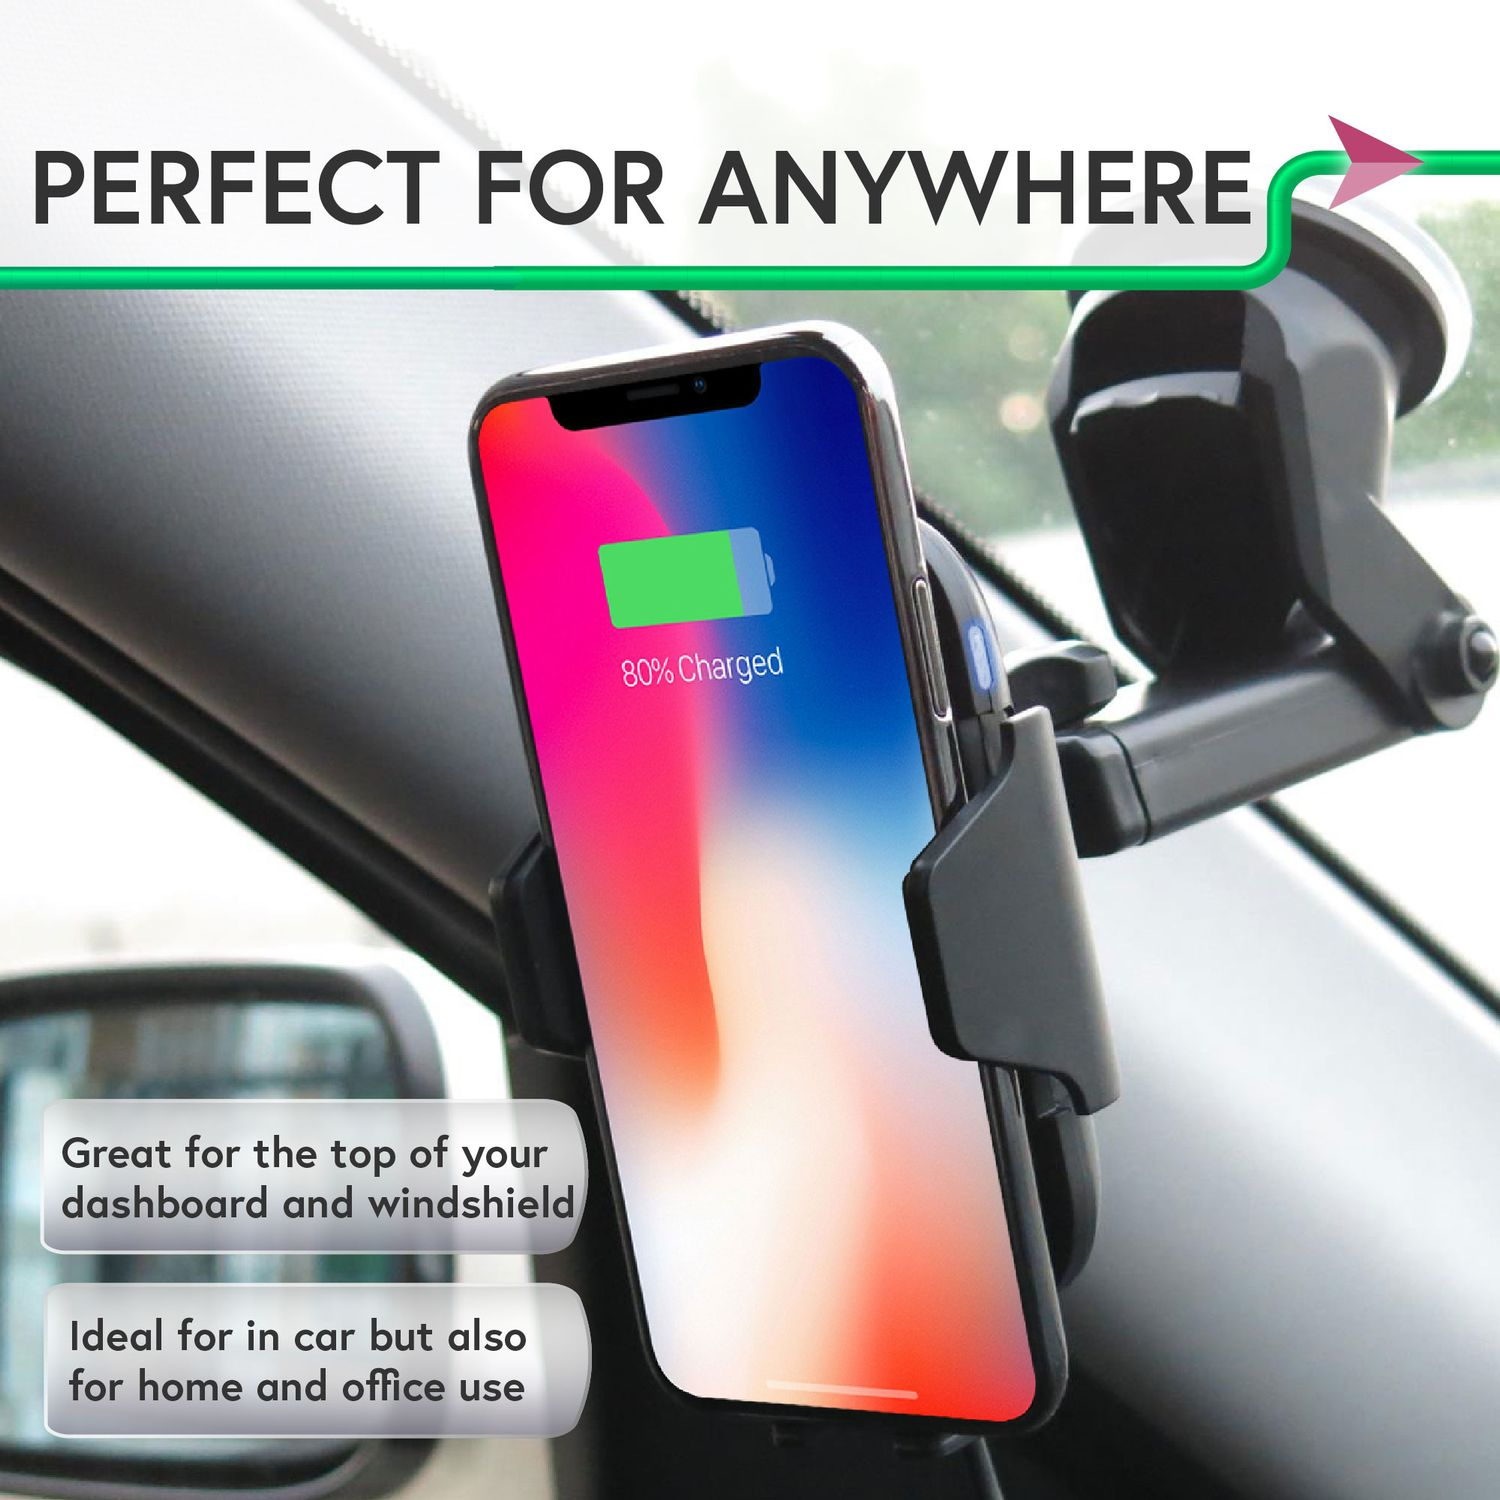 Wireless Charger Mount by Insten Motion Sensor Automatic Dashboard Window Suction & Air Vent Phone Holder Wireless Charging Pad Car Mount for iPhone X 8 Plus Samsung S9 S9+ (Free QC 3.0 Car Charger) - image 1 of 5